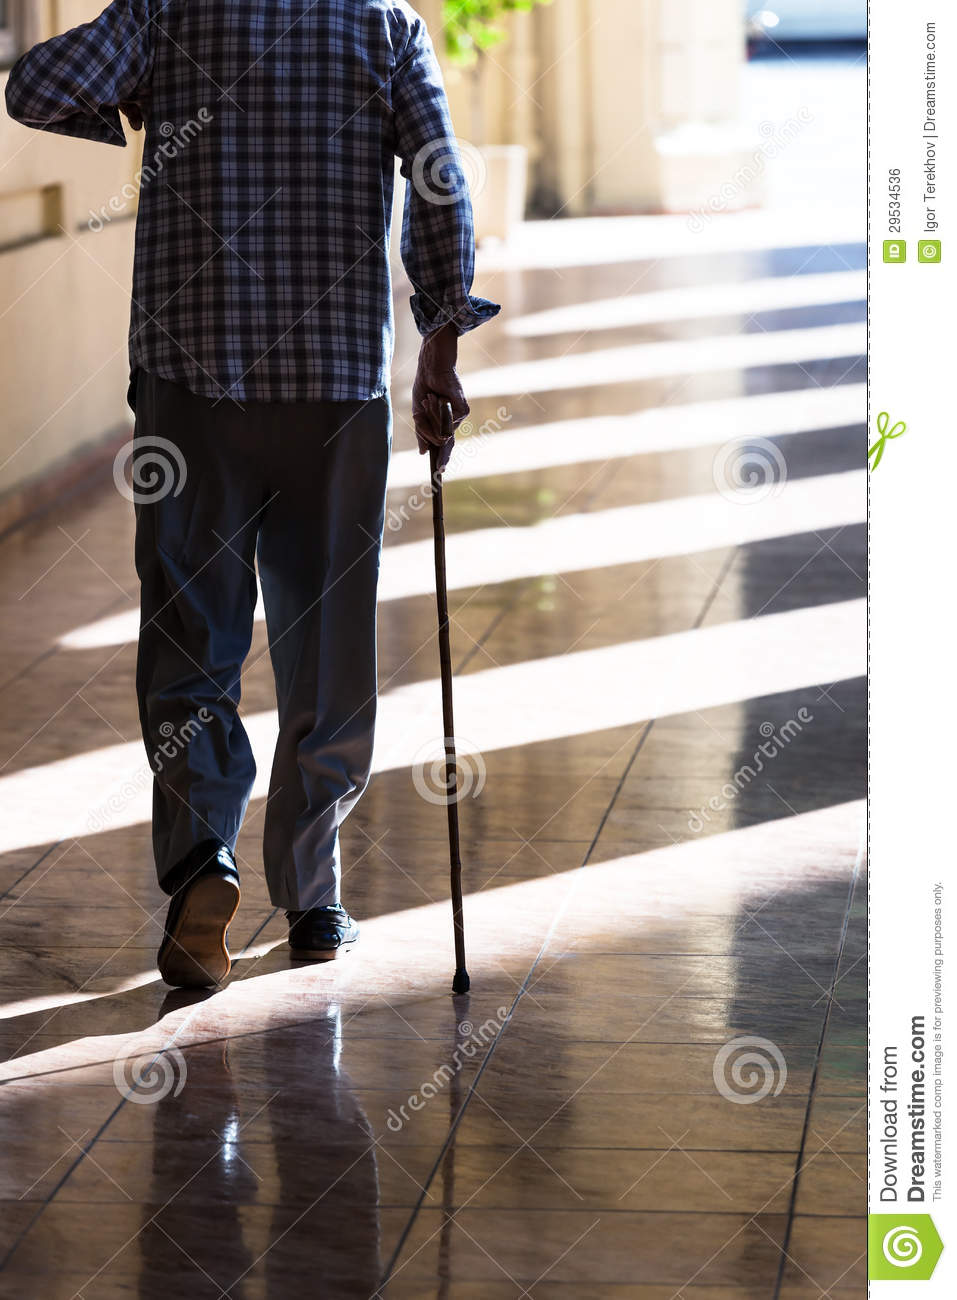 Old Man With A Cane Royalty Free Stock Image - Image: 29534536